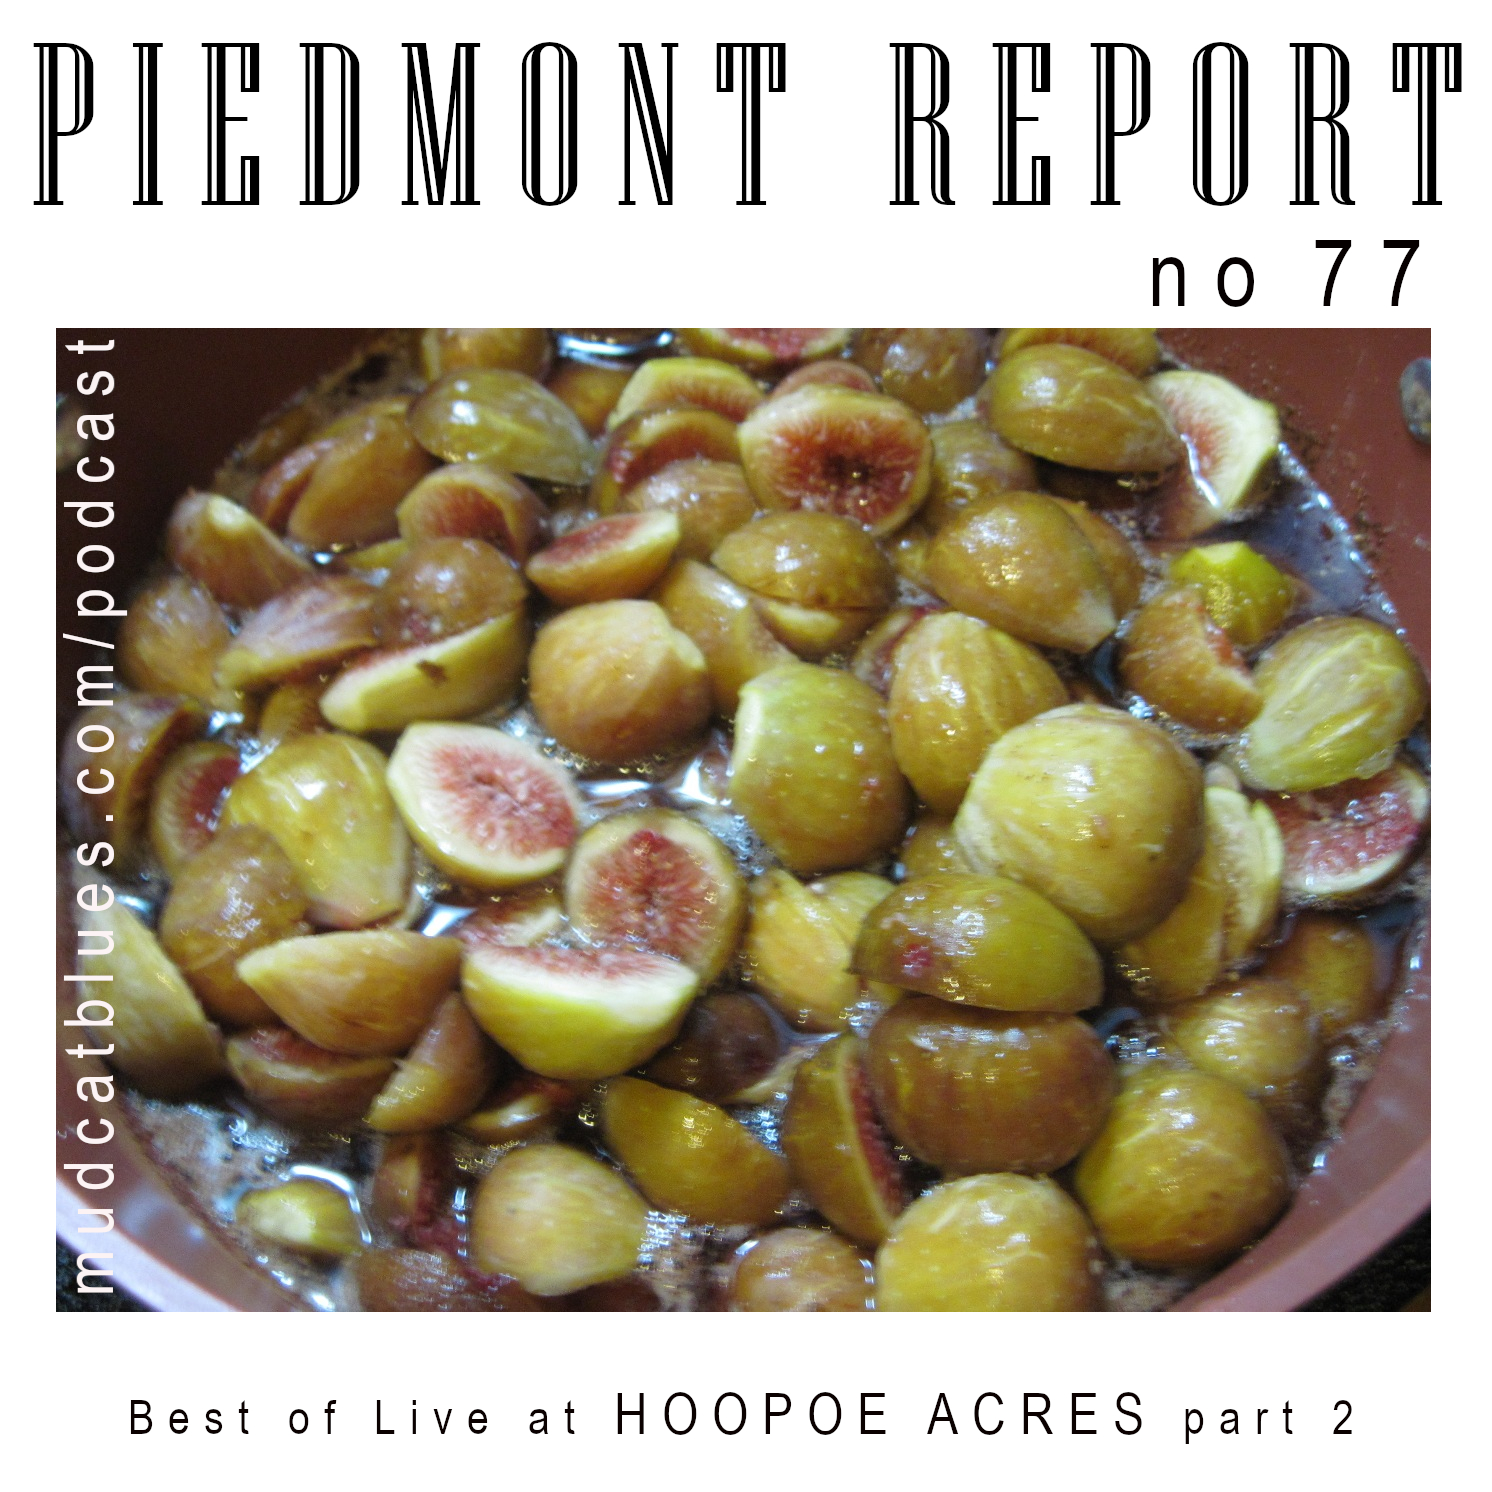 Piedmont Report 77 (Best of Live at Hoopoe Acres, Part 2)